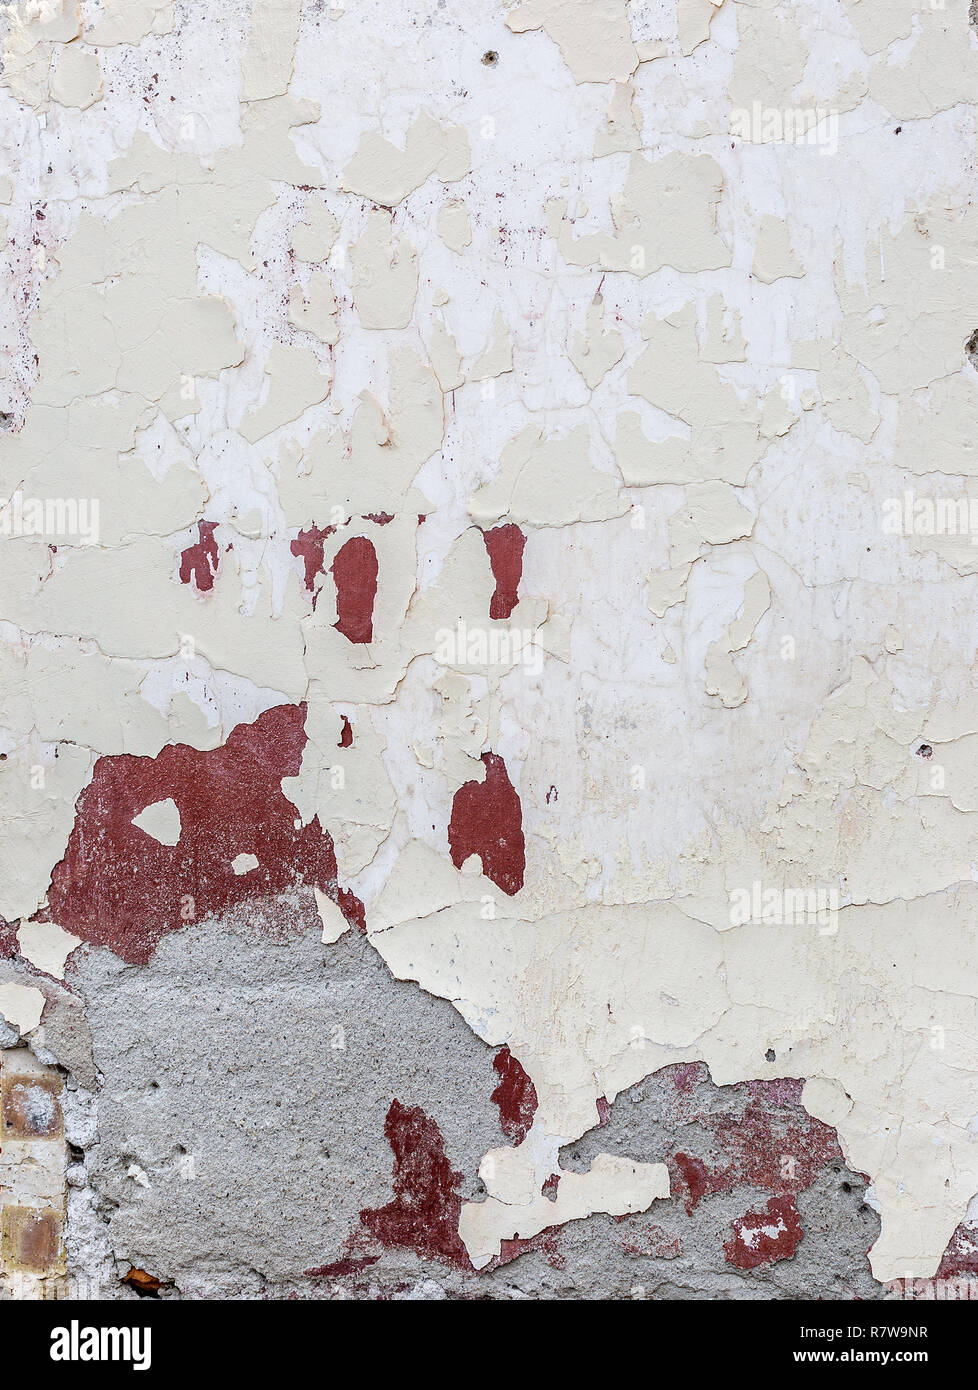 Old abandoned building facade wall with peeling paint, abstract background. Rough cracked stucco surface texture. Vertical photo - Stock Image